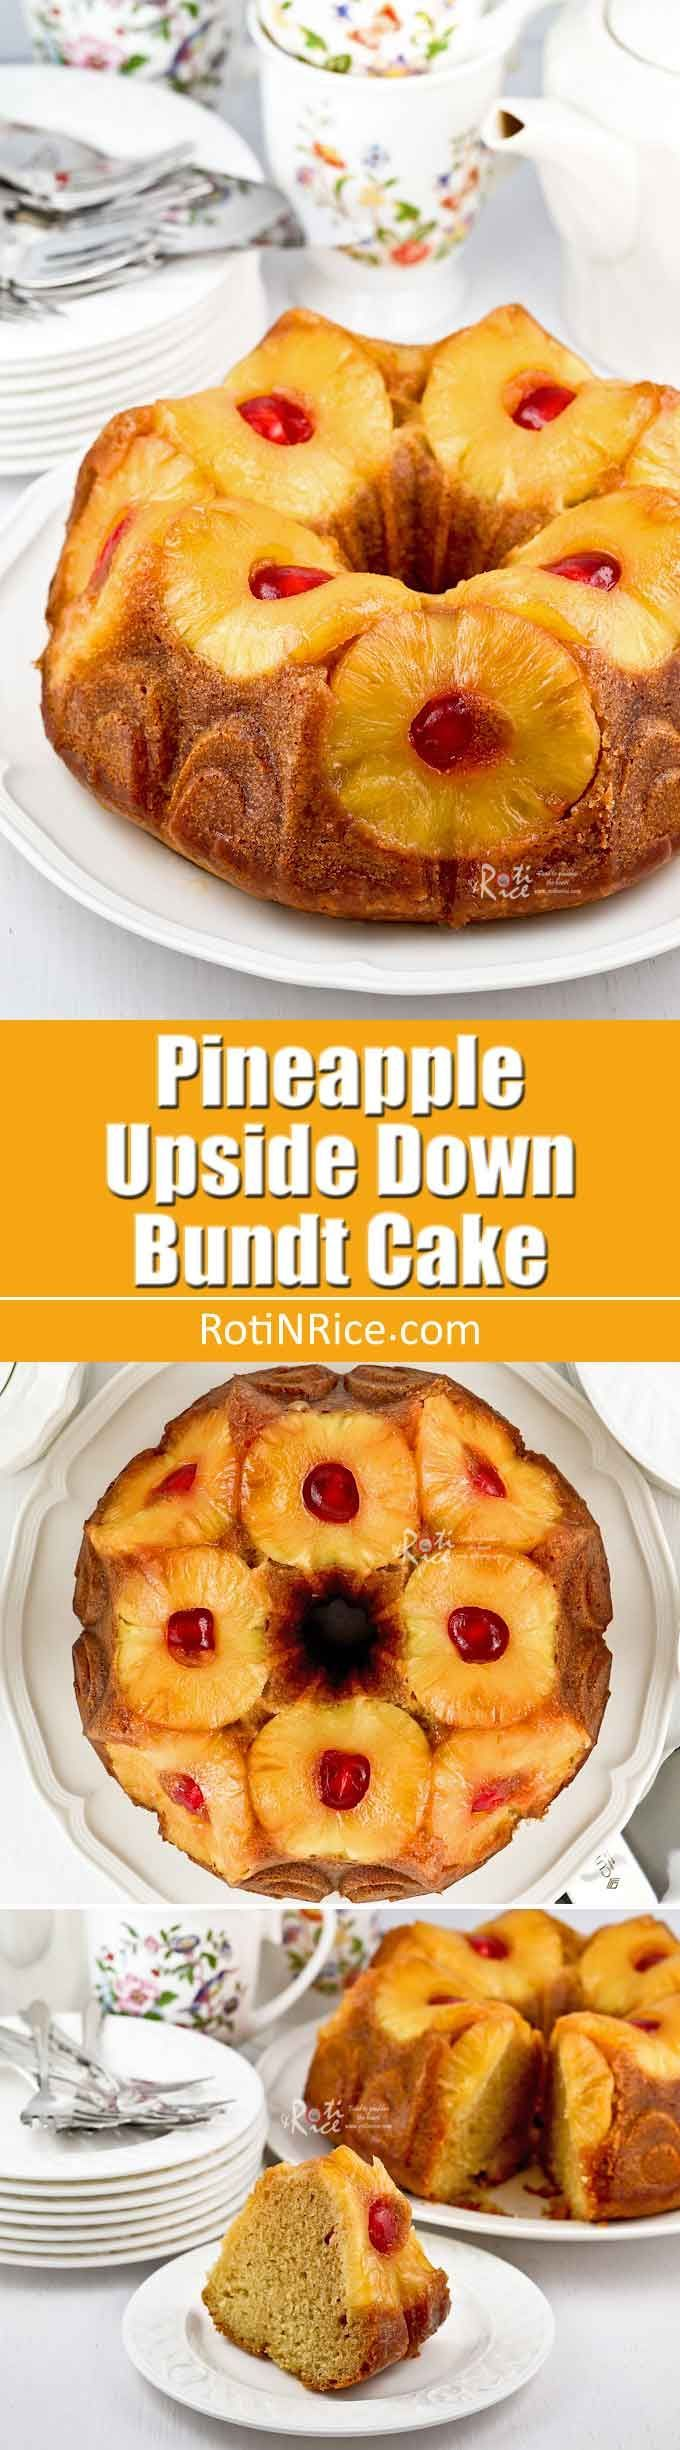 This beautiful Pineapple Upside Down Bundt Cake is a feast for the eyes and the palate. It is fragrant, moist, and perfect for any occasion.   RotiNRice.com